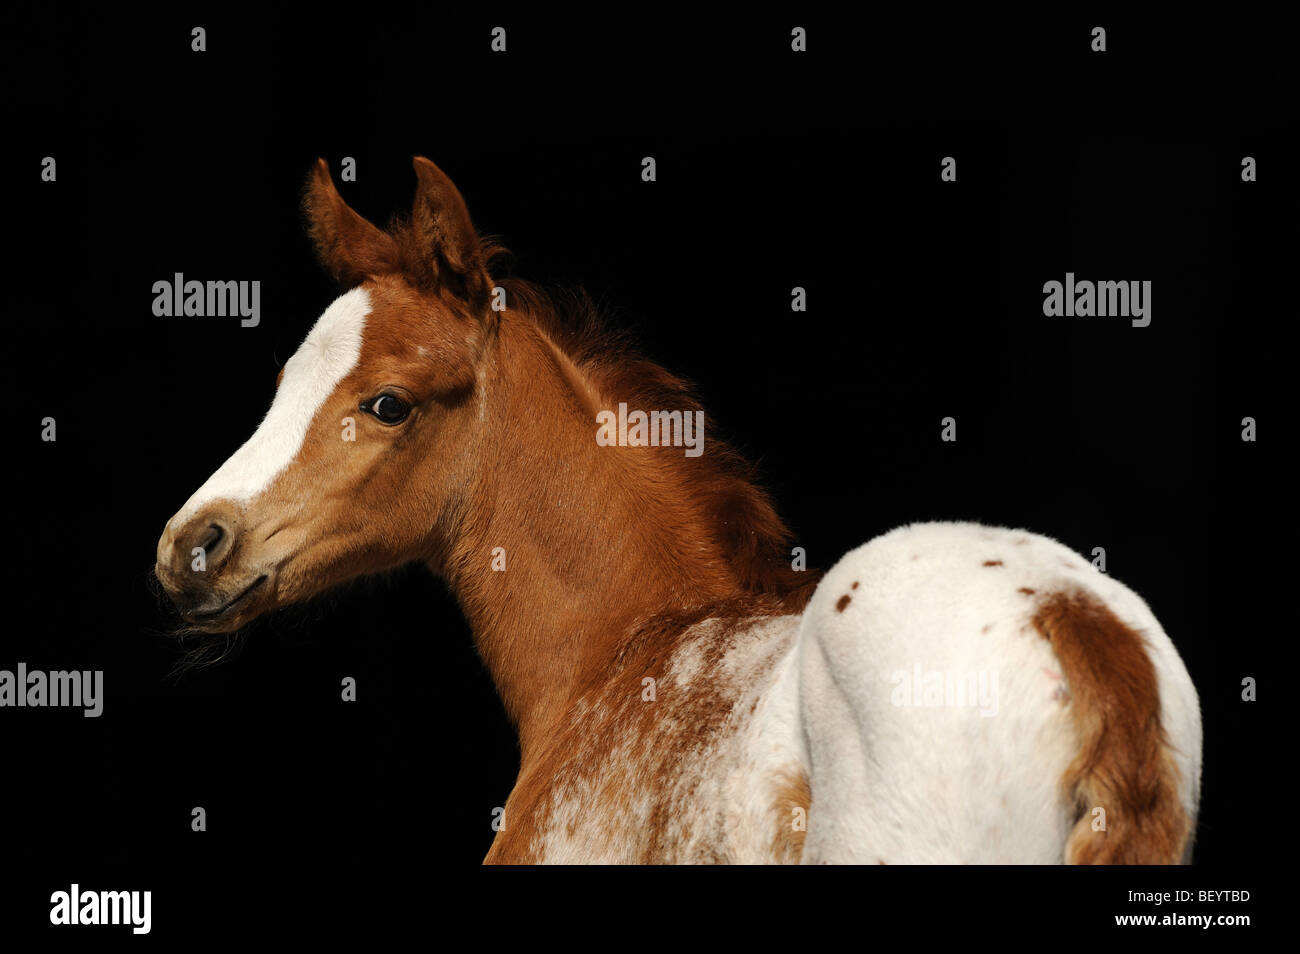 AraAppaloosa Horse (Equus caballus), foal. This breed is a blend of Arabian and Appaloosa. - Stock Image